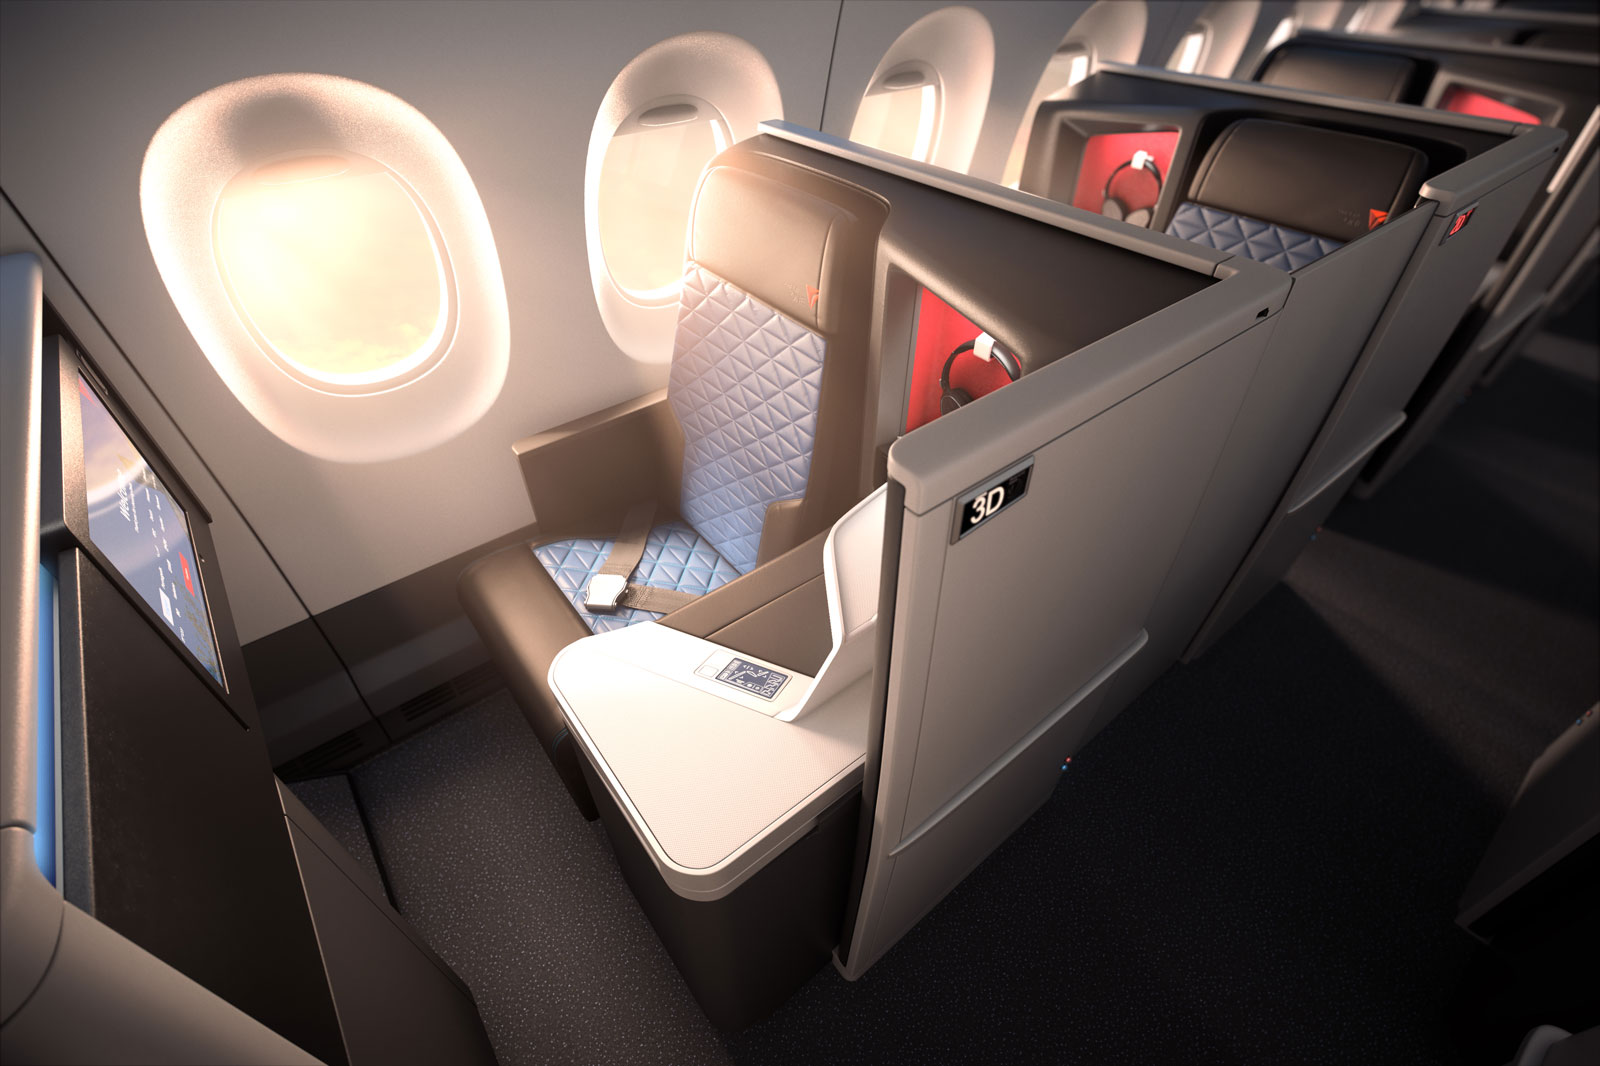 The suites that will be in Delta's new Airbus A350.